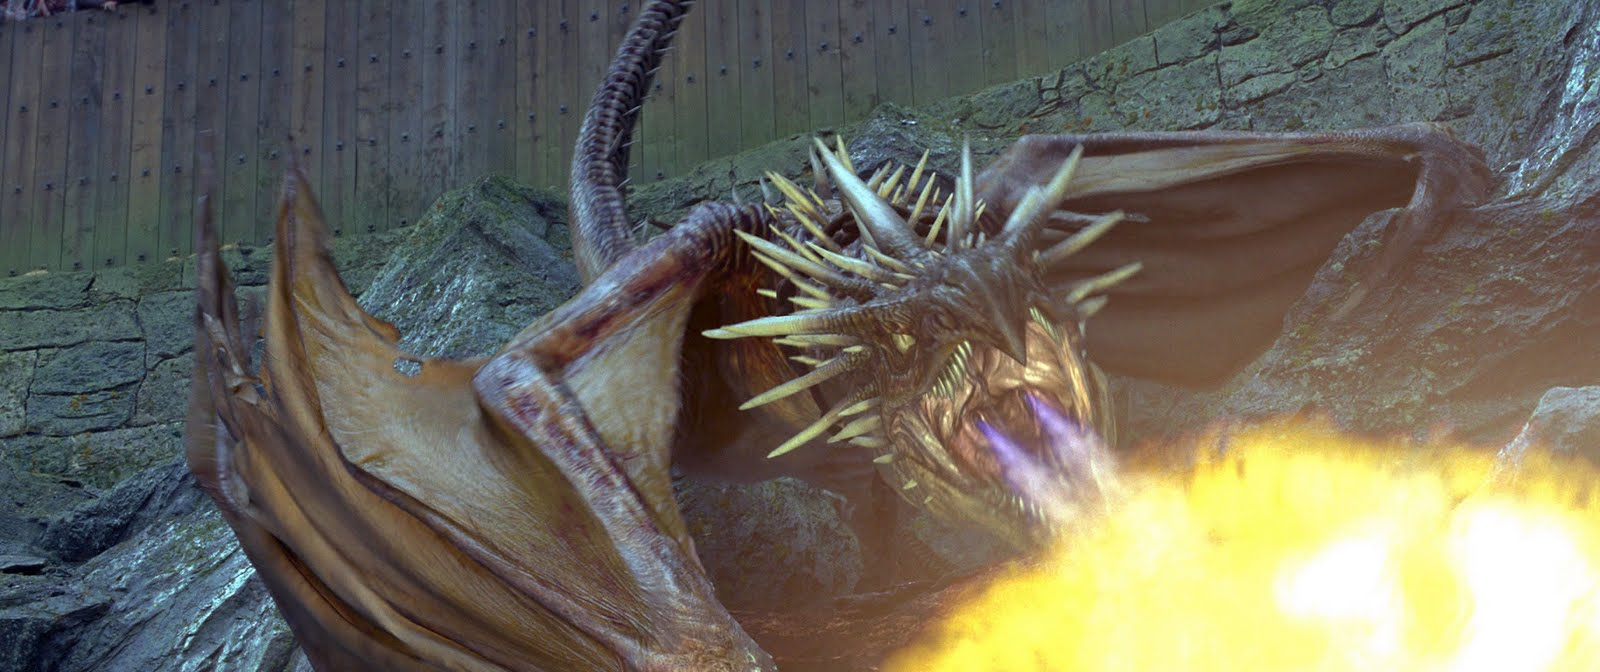 Monsters & Beasts Database: Hungarian horntail